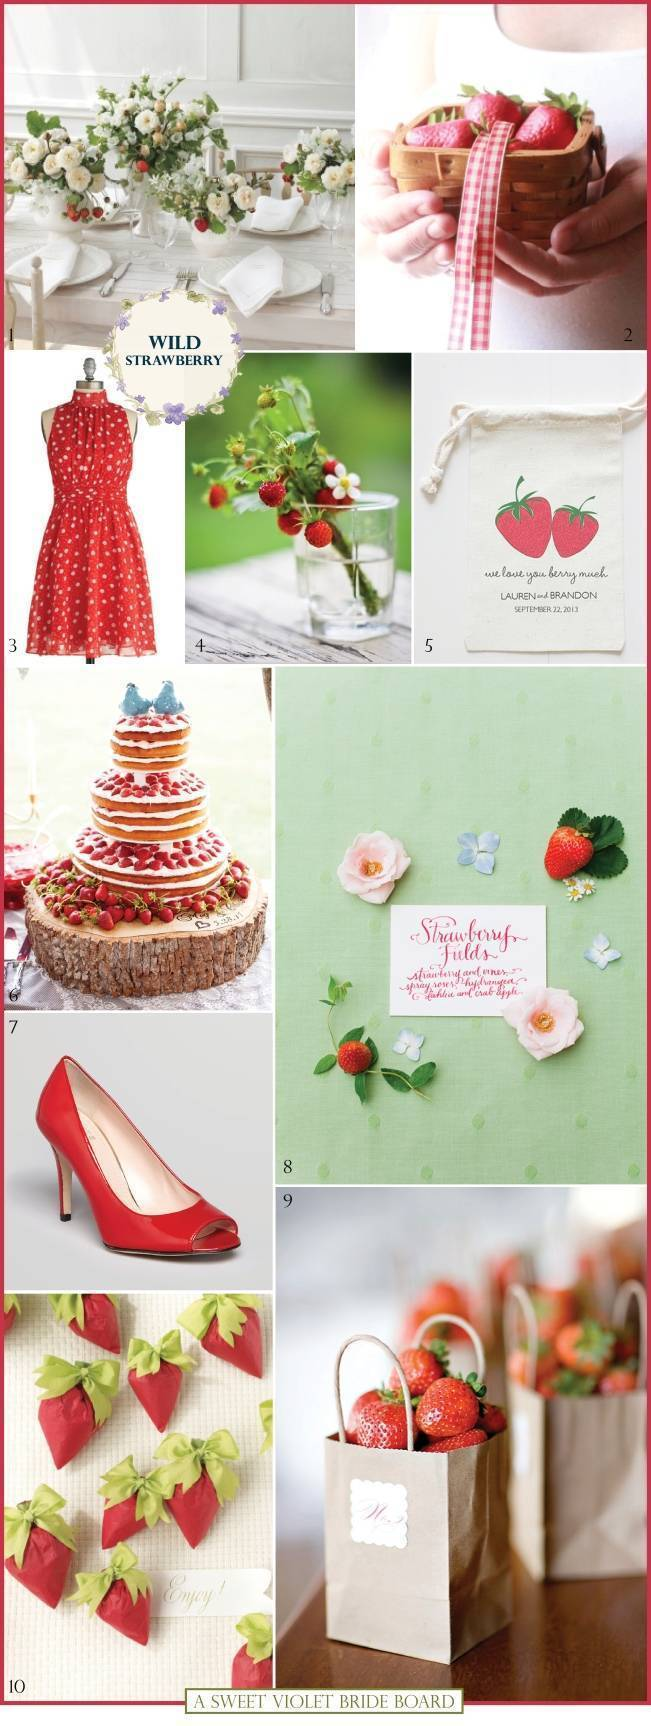 Wedding Inspiration Board #4: Wild Strawberry